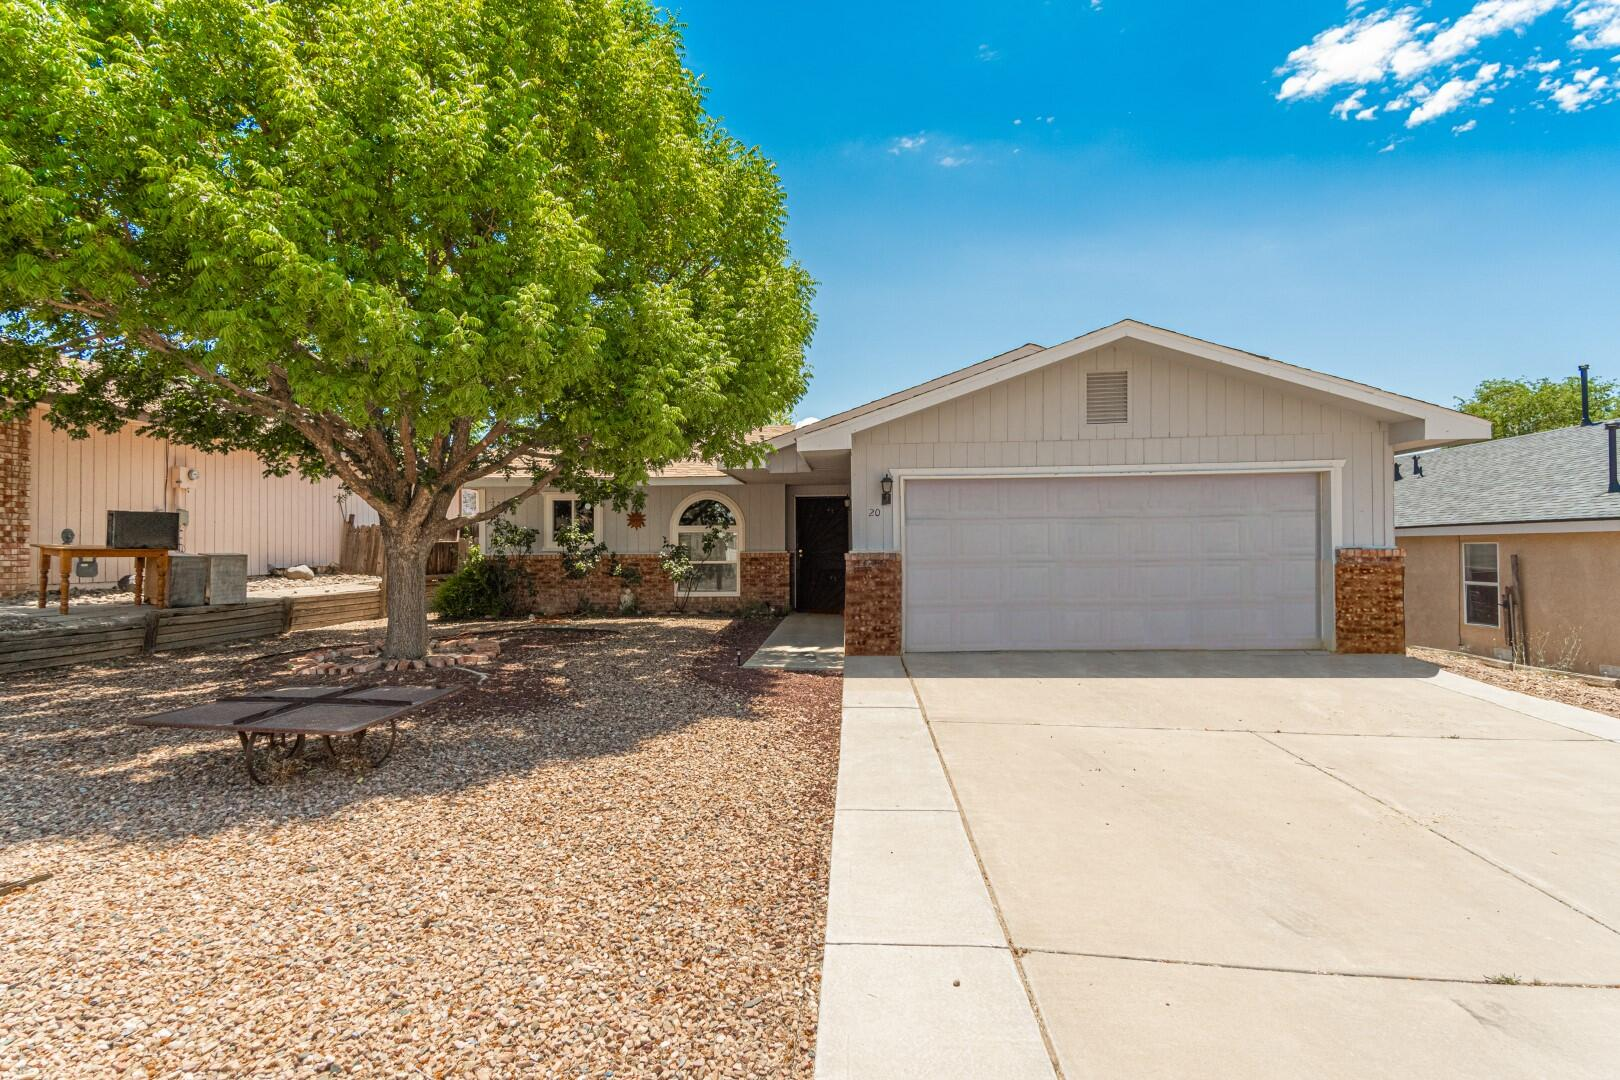 Great location near UNM Valencia Campus.  Cathedral ceiling in living room wtih wood laminate flooring.  Tile flooring in kitchen, dining and bathrooms.  Split master suite.  Covered patio.  Fenced backyard.  2-car attached garage.